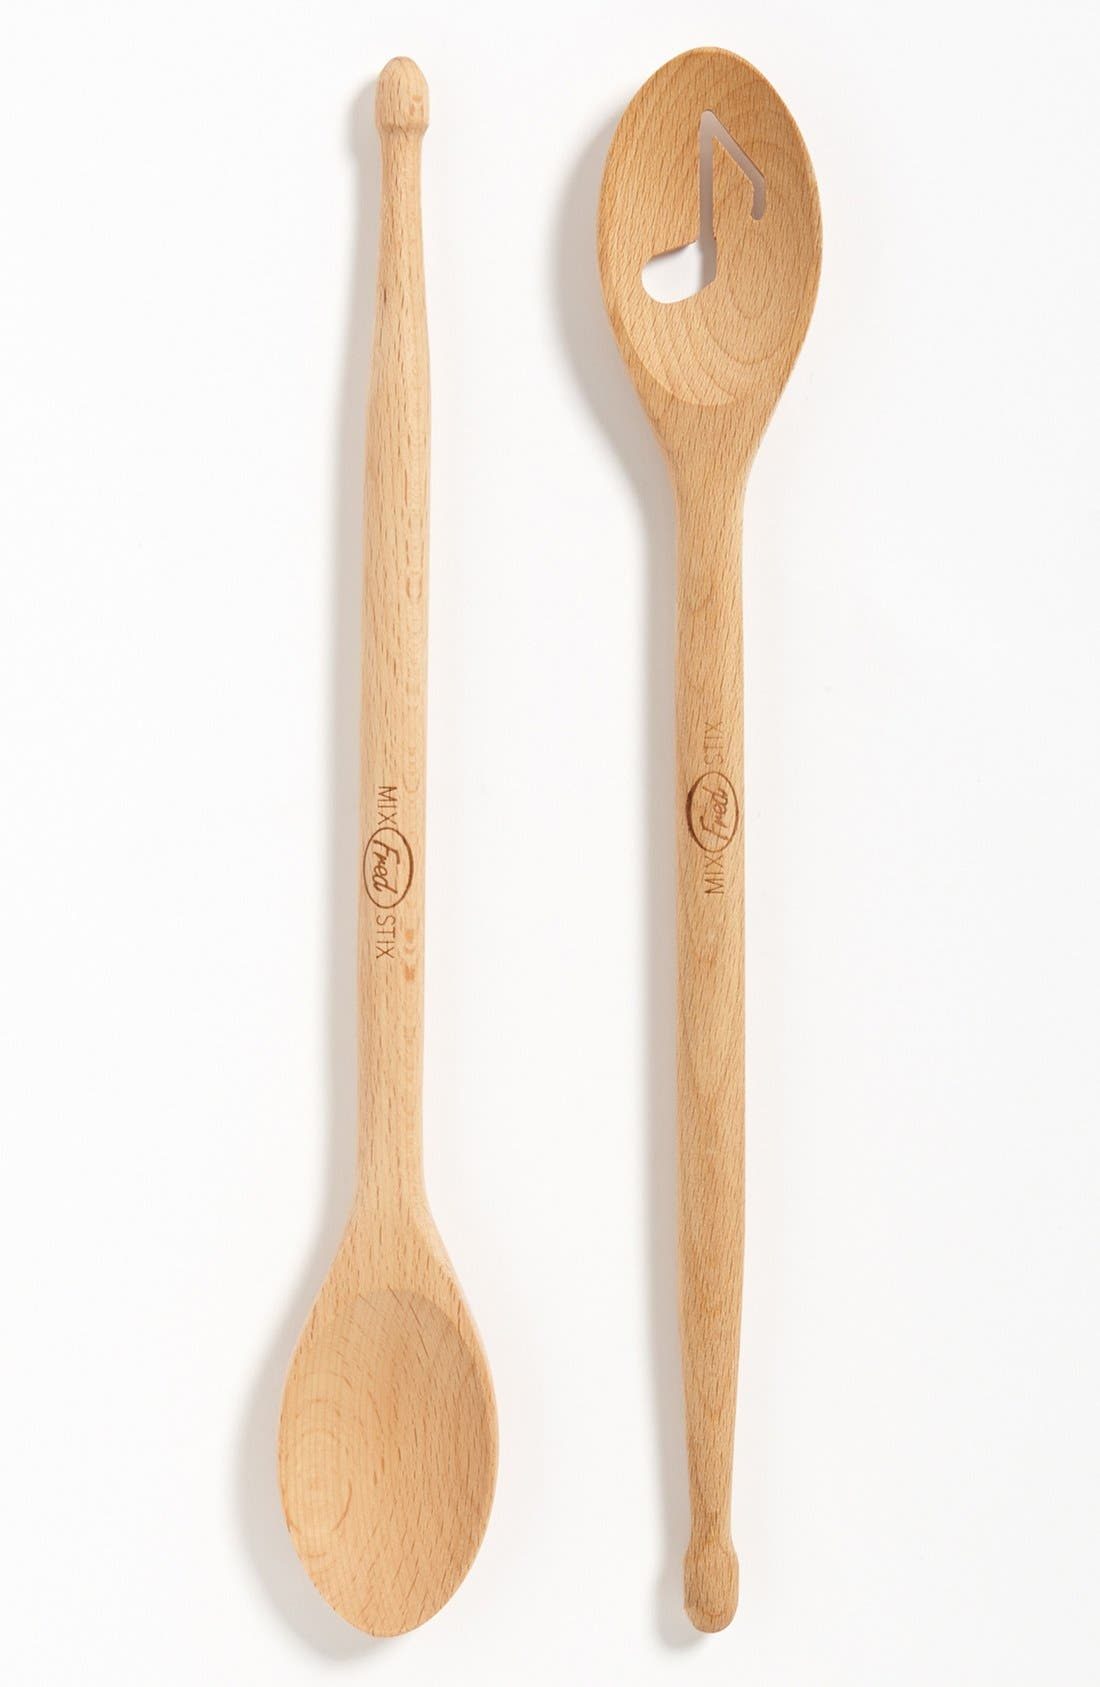 Alternate Image 1 Selected - Fred & Friends Drumstick Cooking Spoons